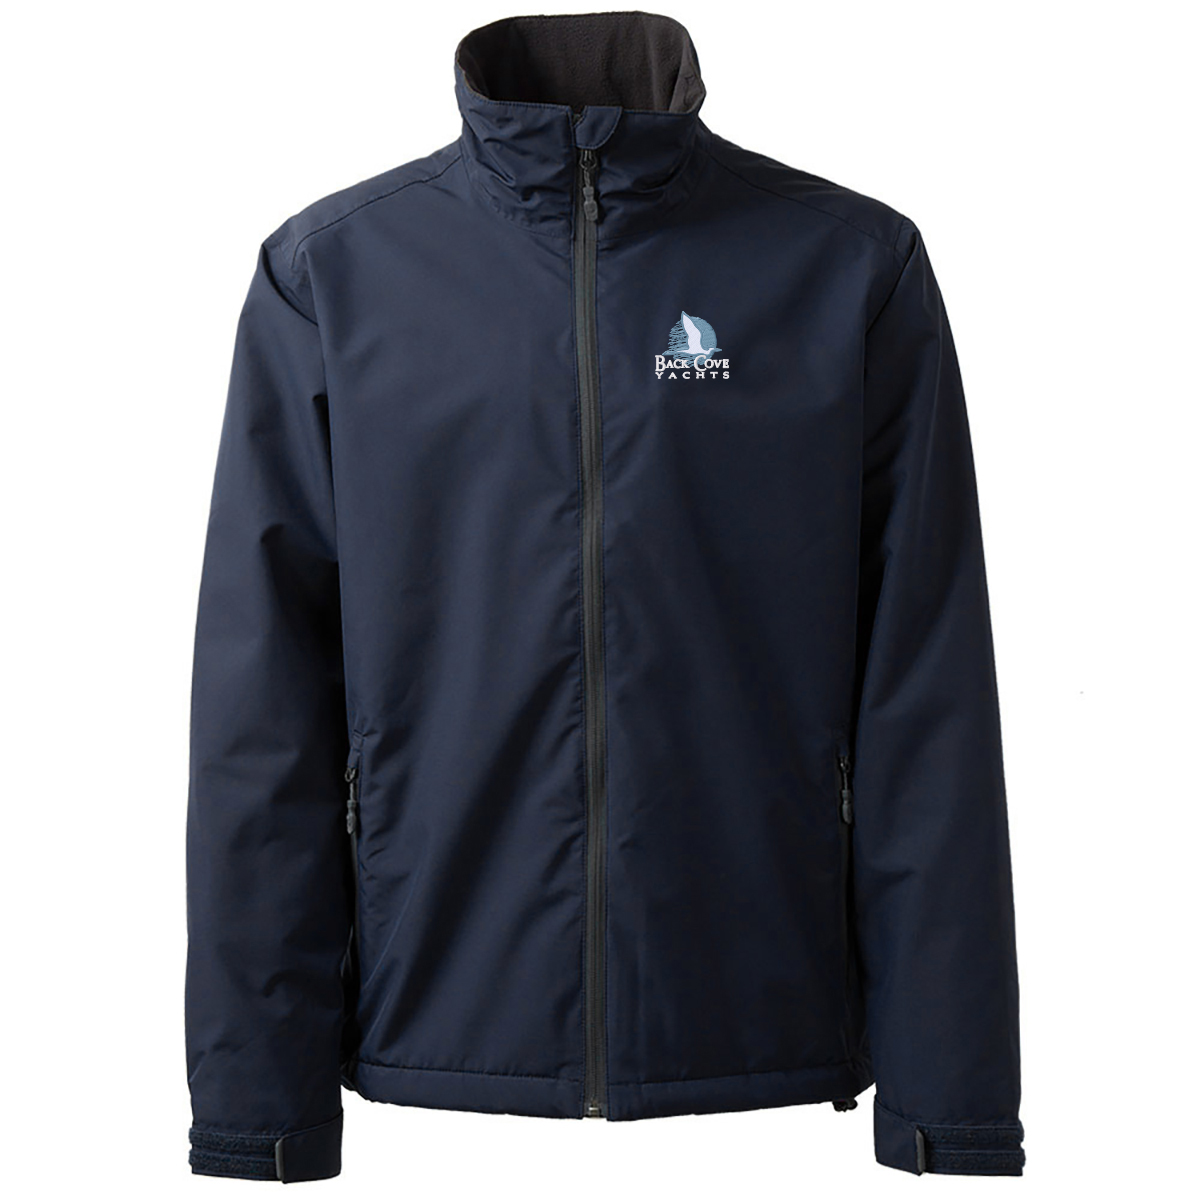 Back Cove Yachts - Men's Gill  Crew Sport Lite Jacket